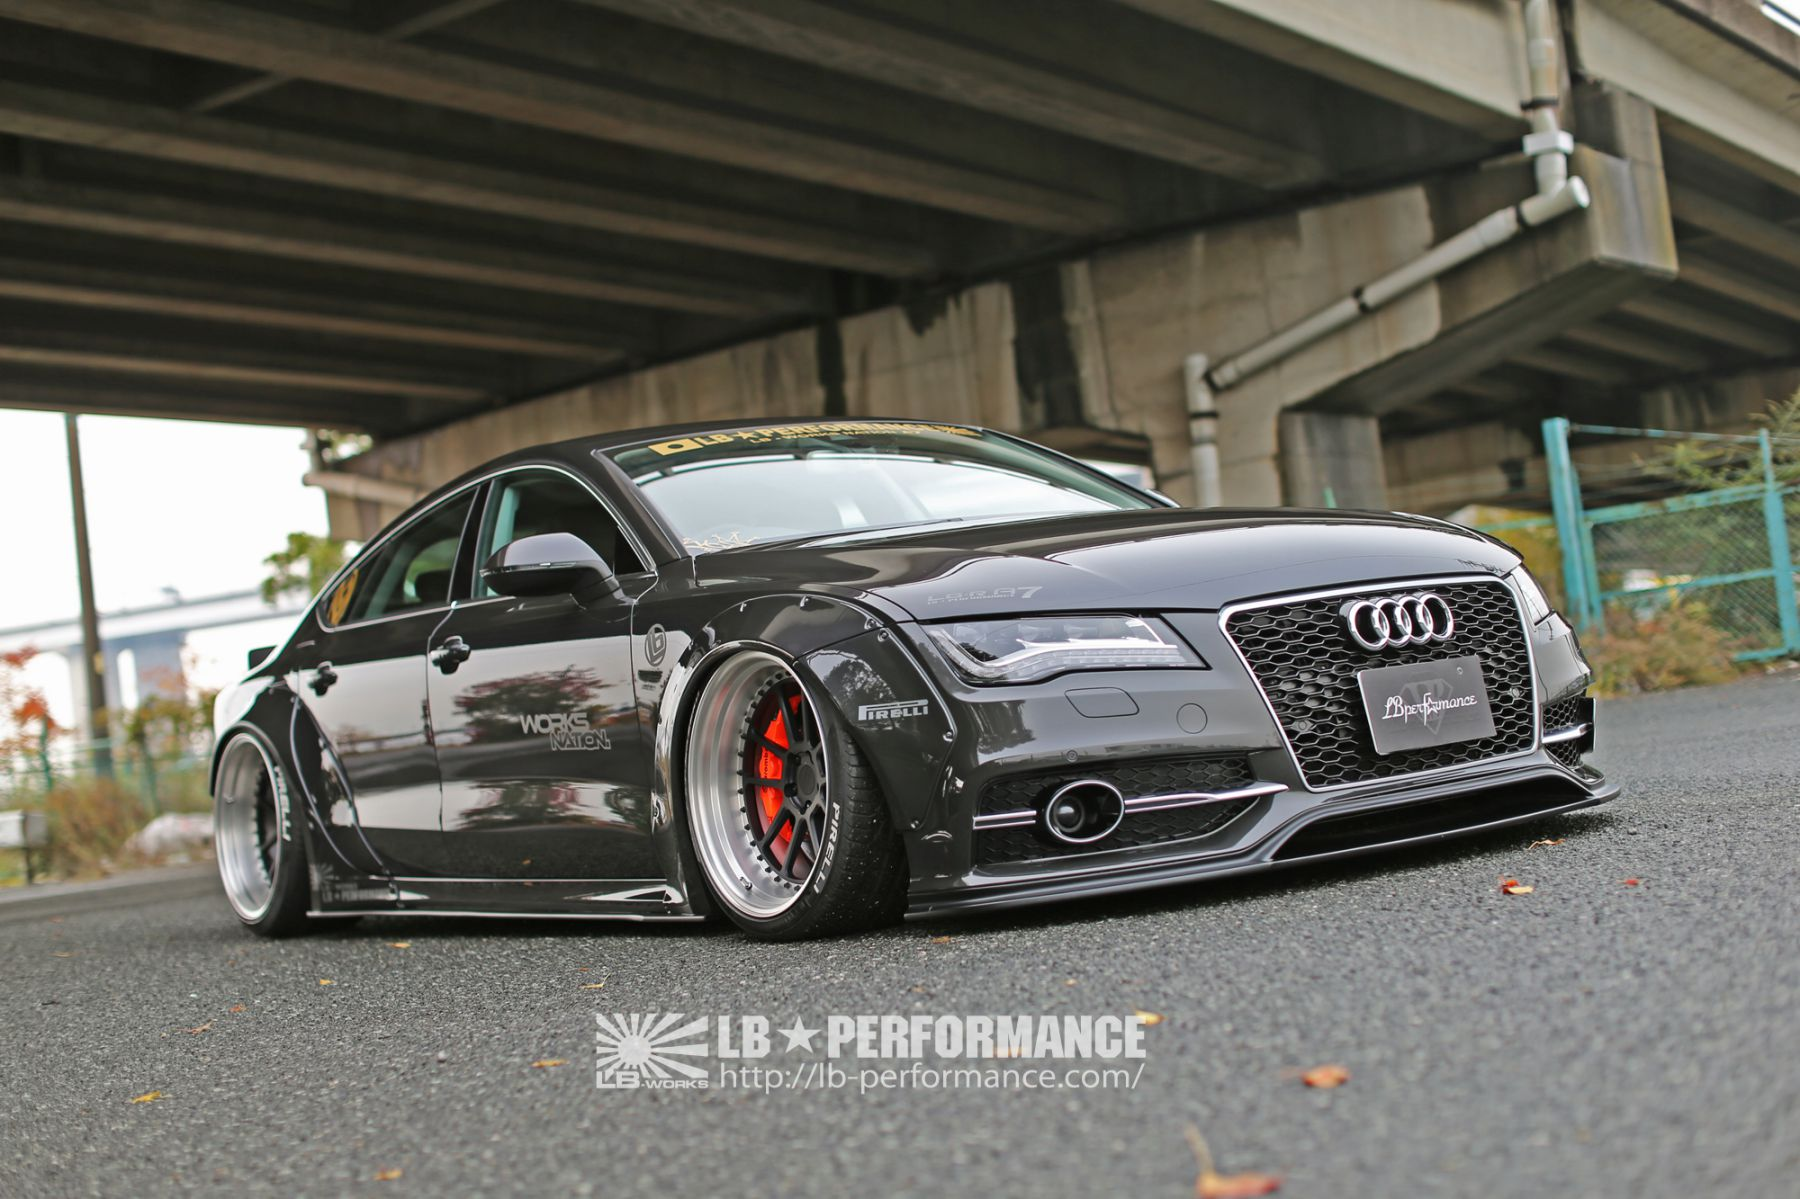 IMG_1479_compressed-1 LB-WORKS AUDI A7 / S7